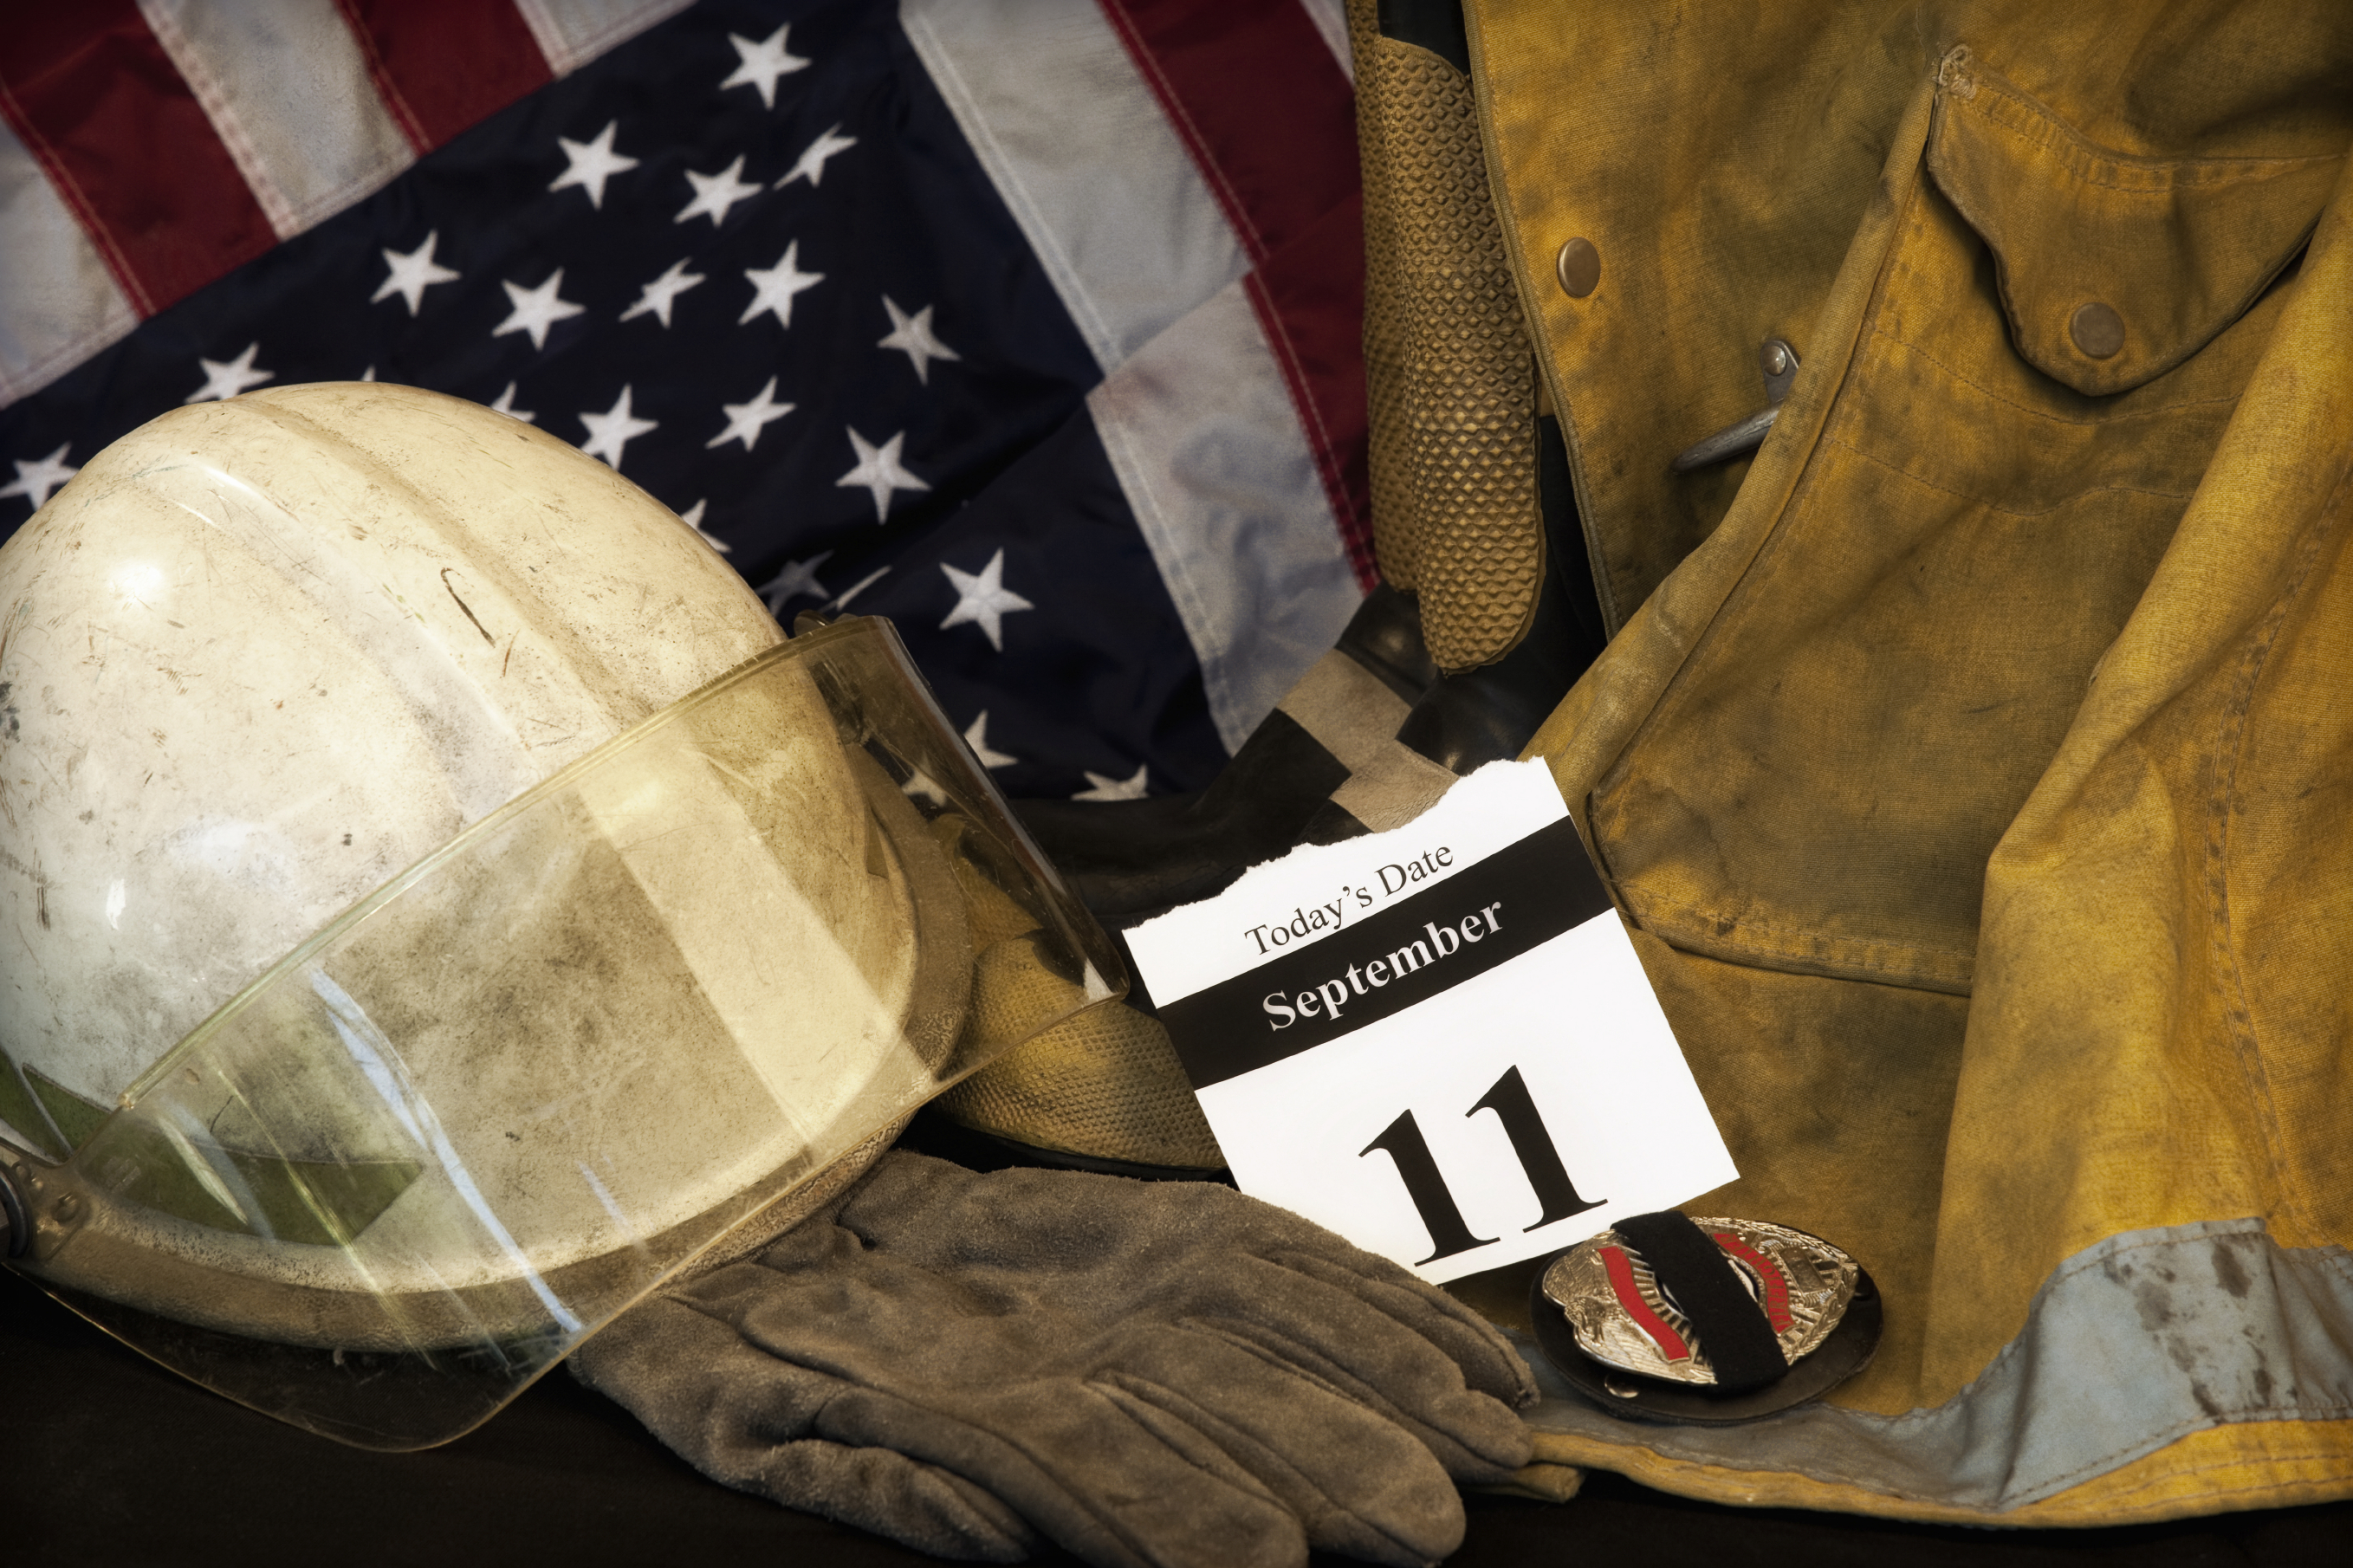 9/11 essay introduction Composing a paper on 9/11 requires not only profound knowledge but also  mentioning some essential points use the tips to write a top-quality paper.